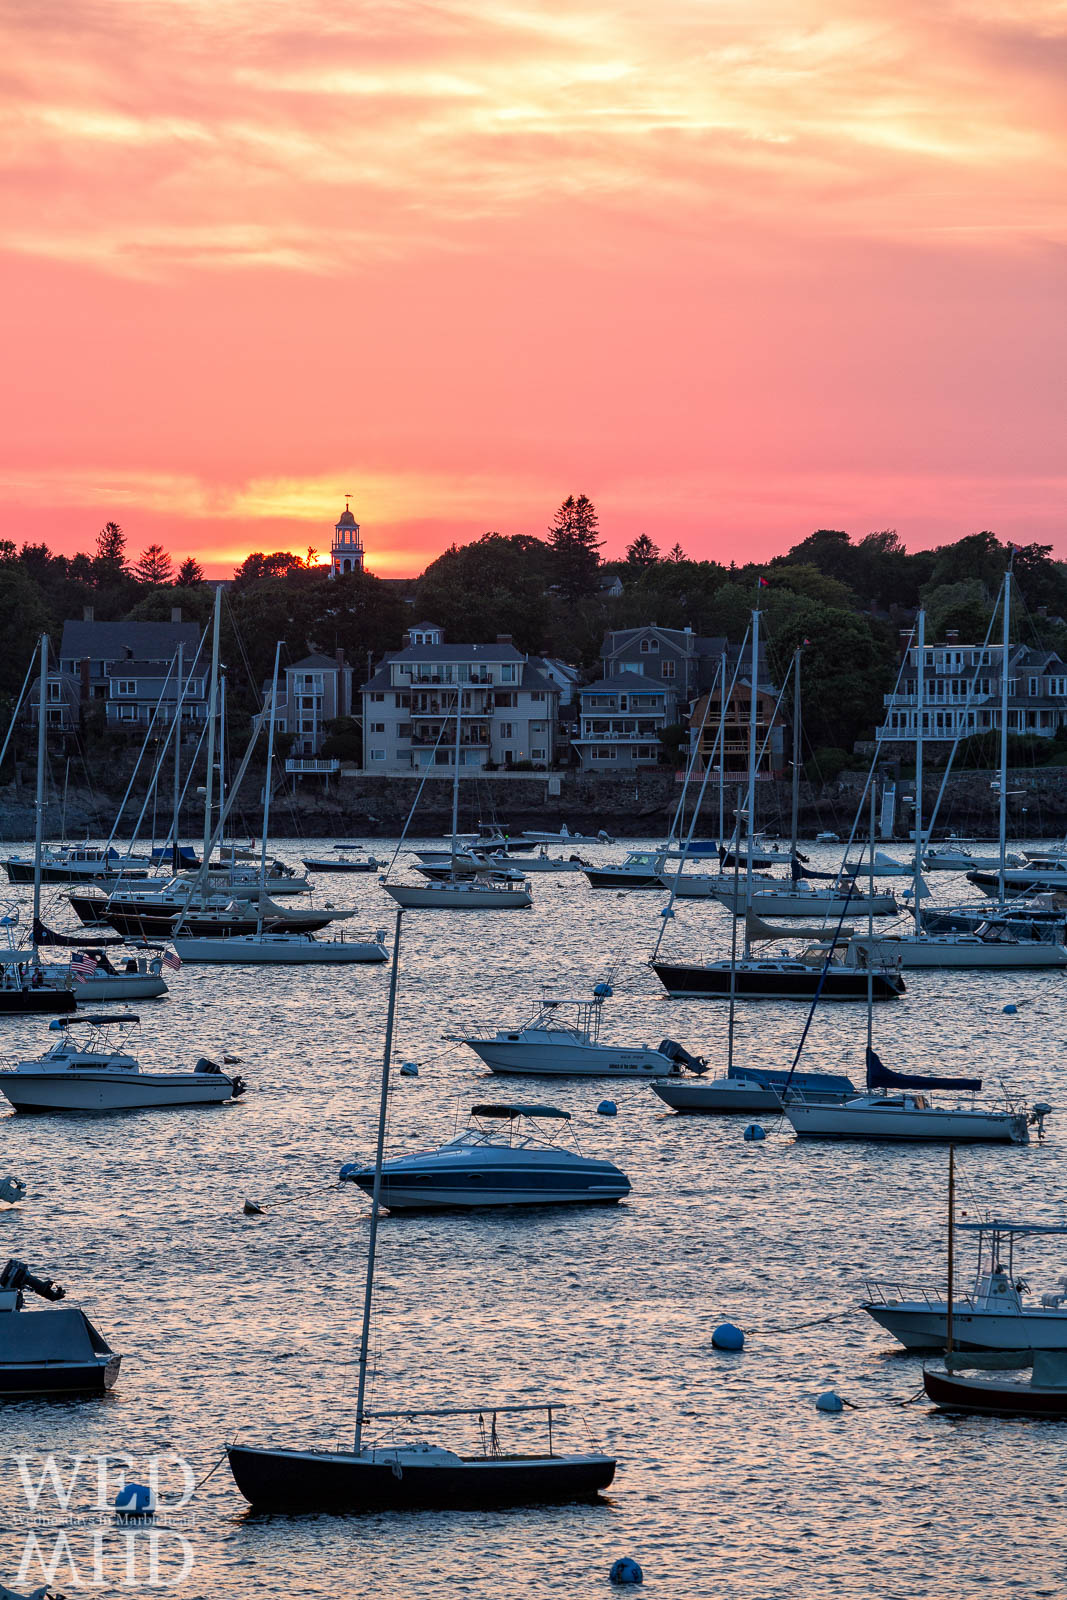 A red sky at night serves as backdrop to Old North Church and homes along Marblehead Harbor